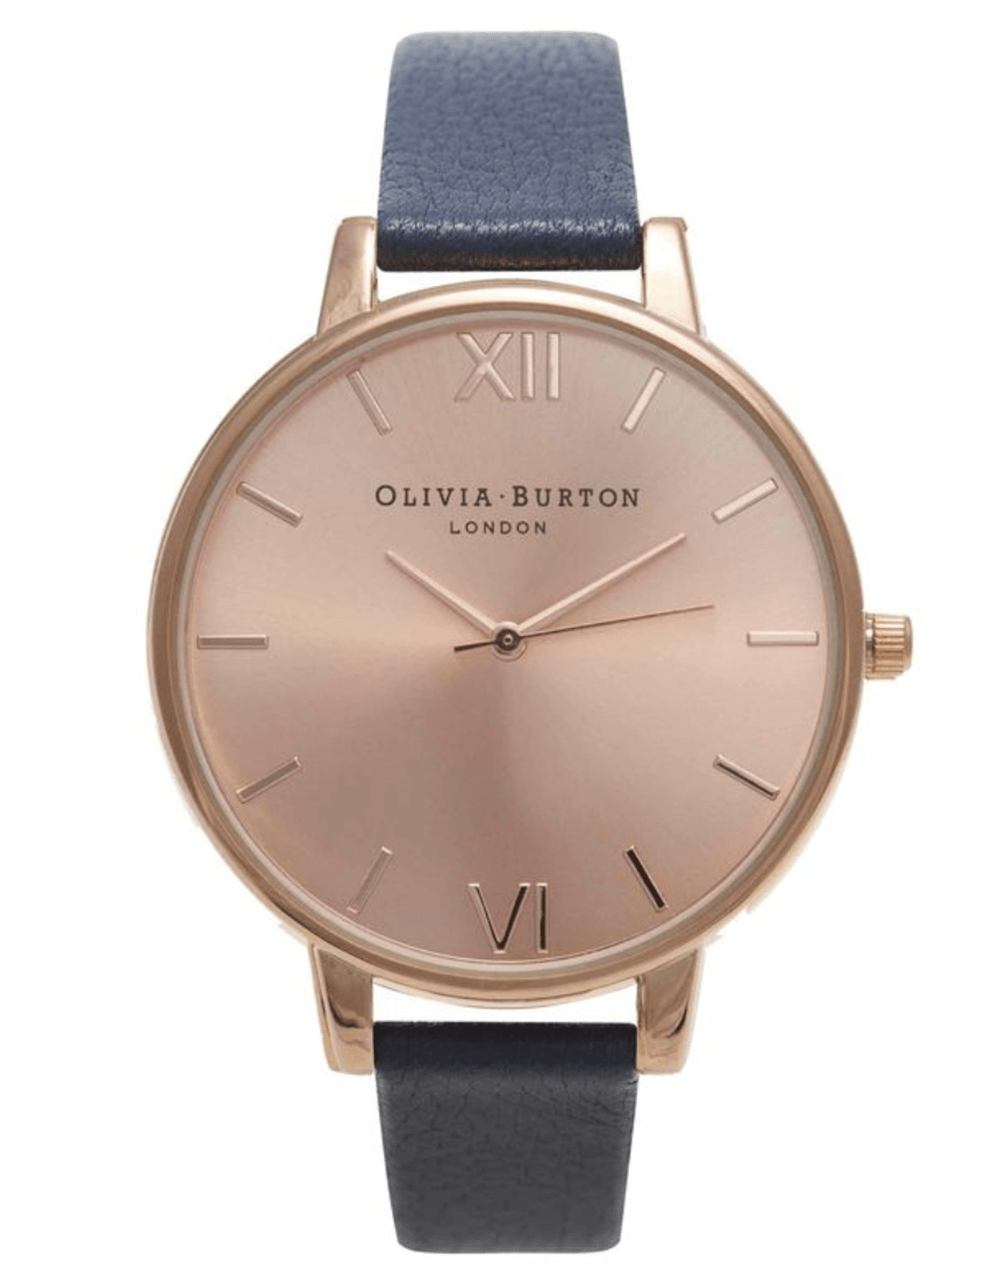 Plain rose gold olivia burton watch face with a navy blue strap